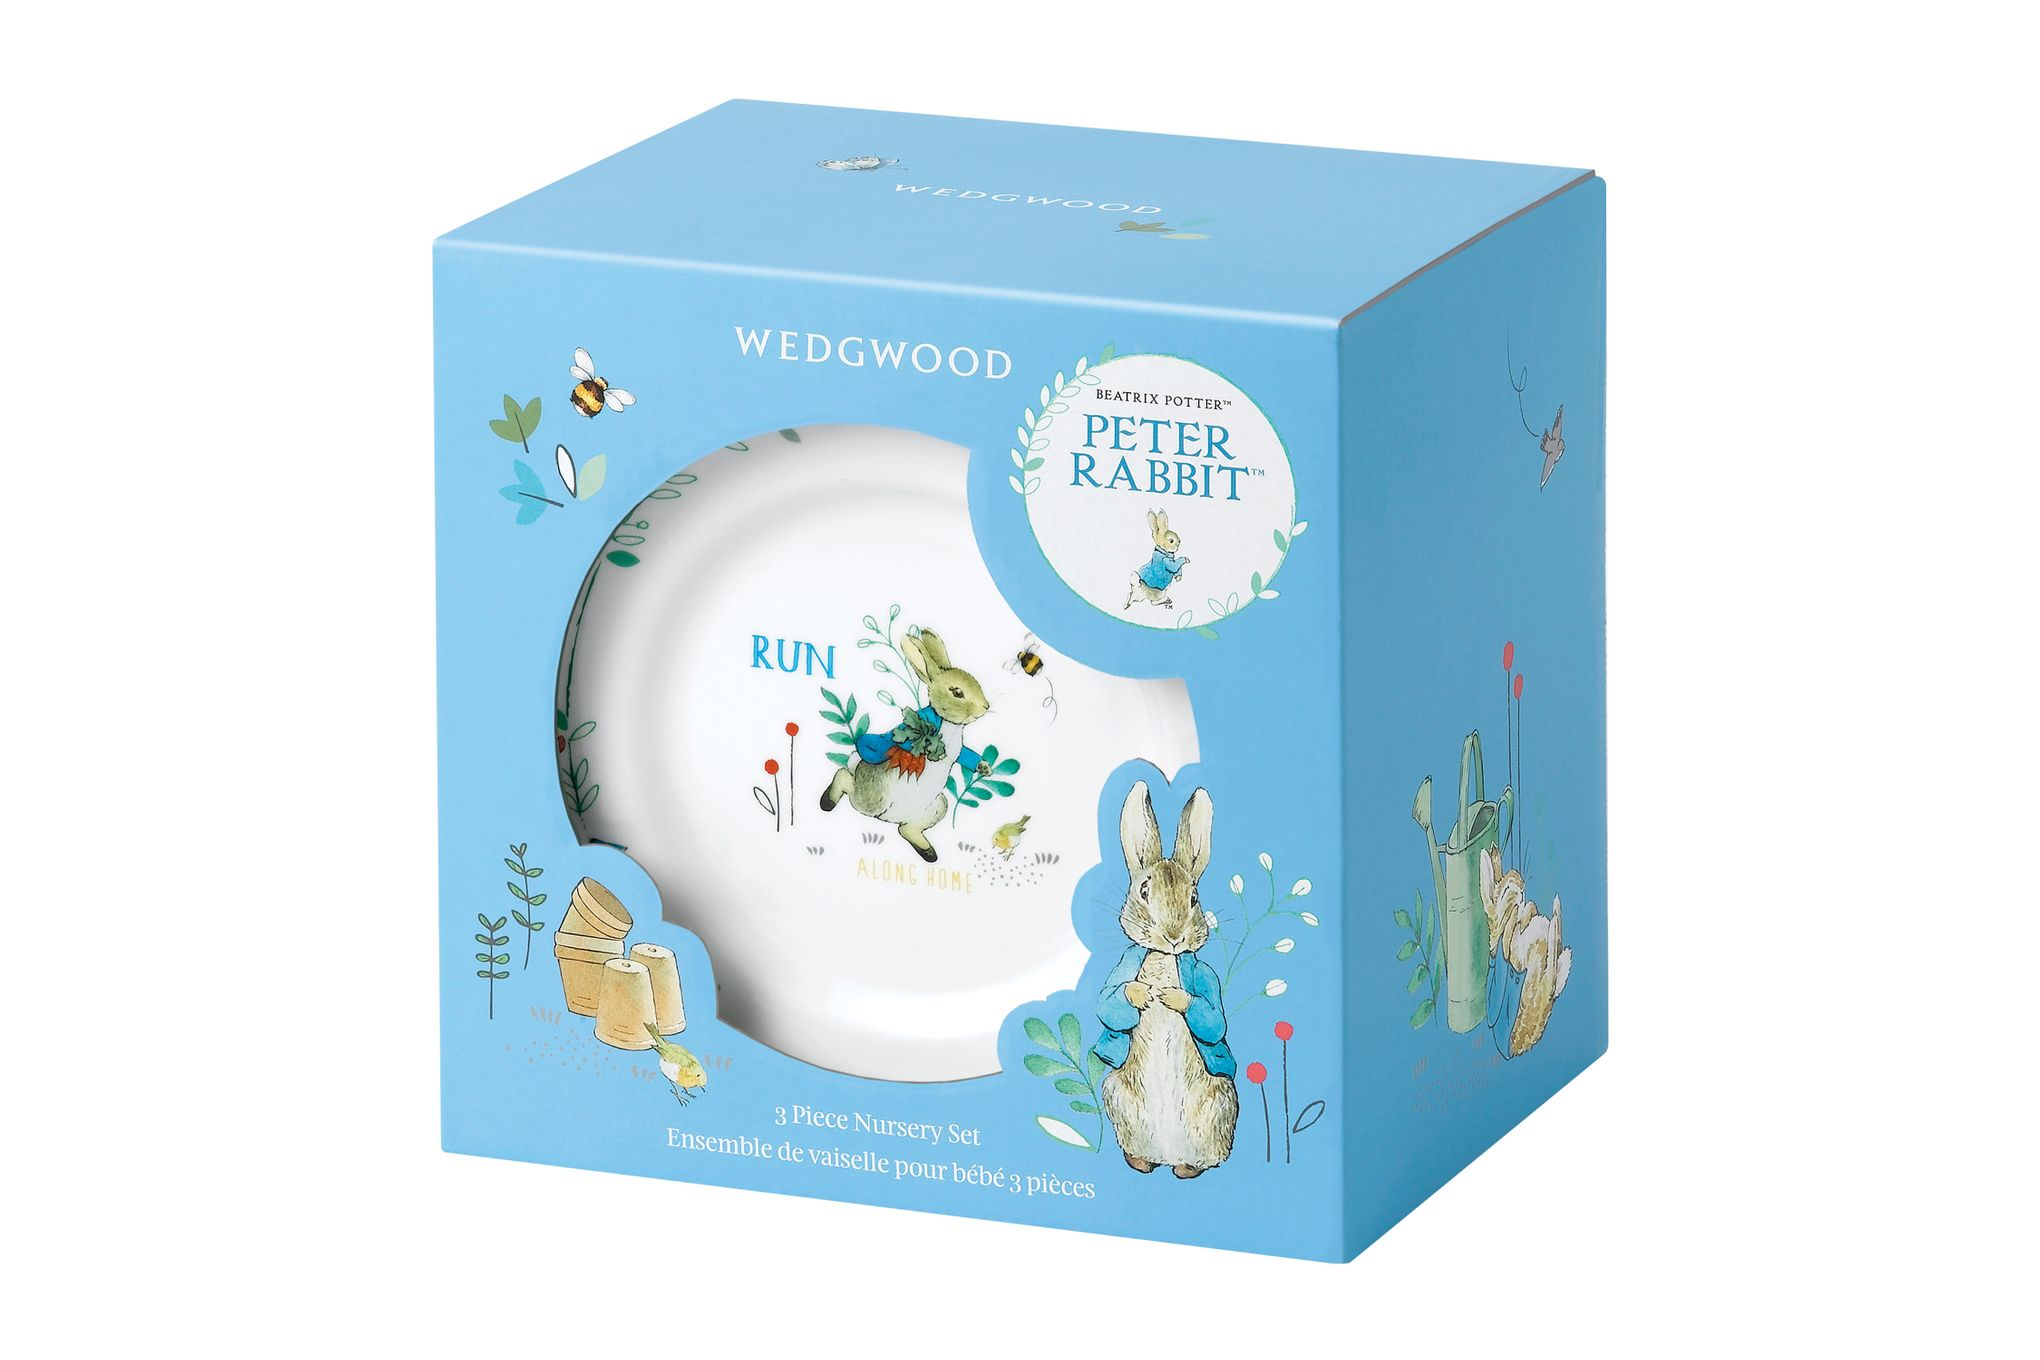 Wedgwood Peter Rabbit 3 Piece Set Blue thumb 2